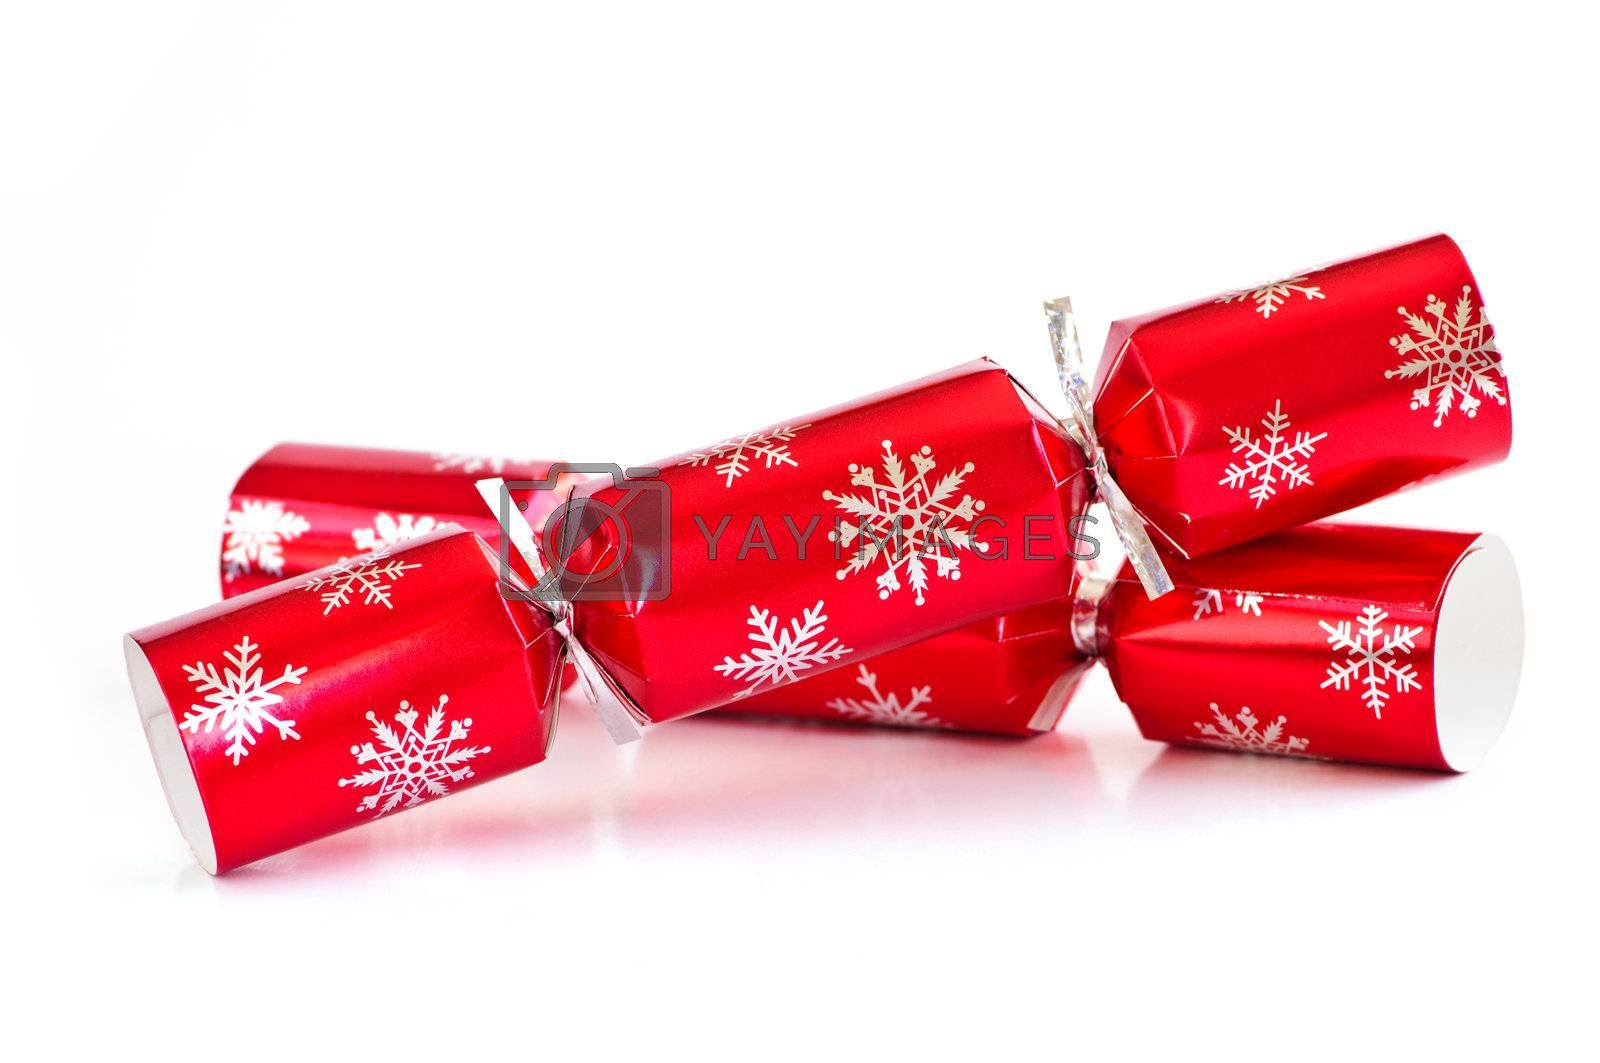 Royalty free image of Christmas crackers by elenathewise